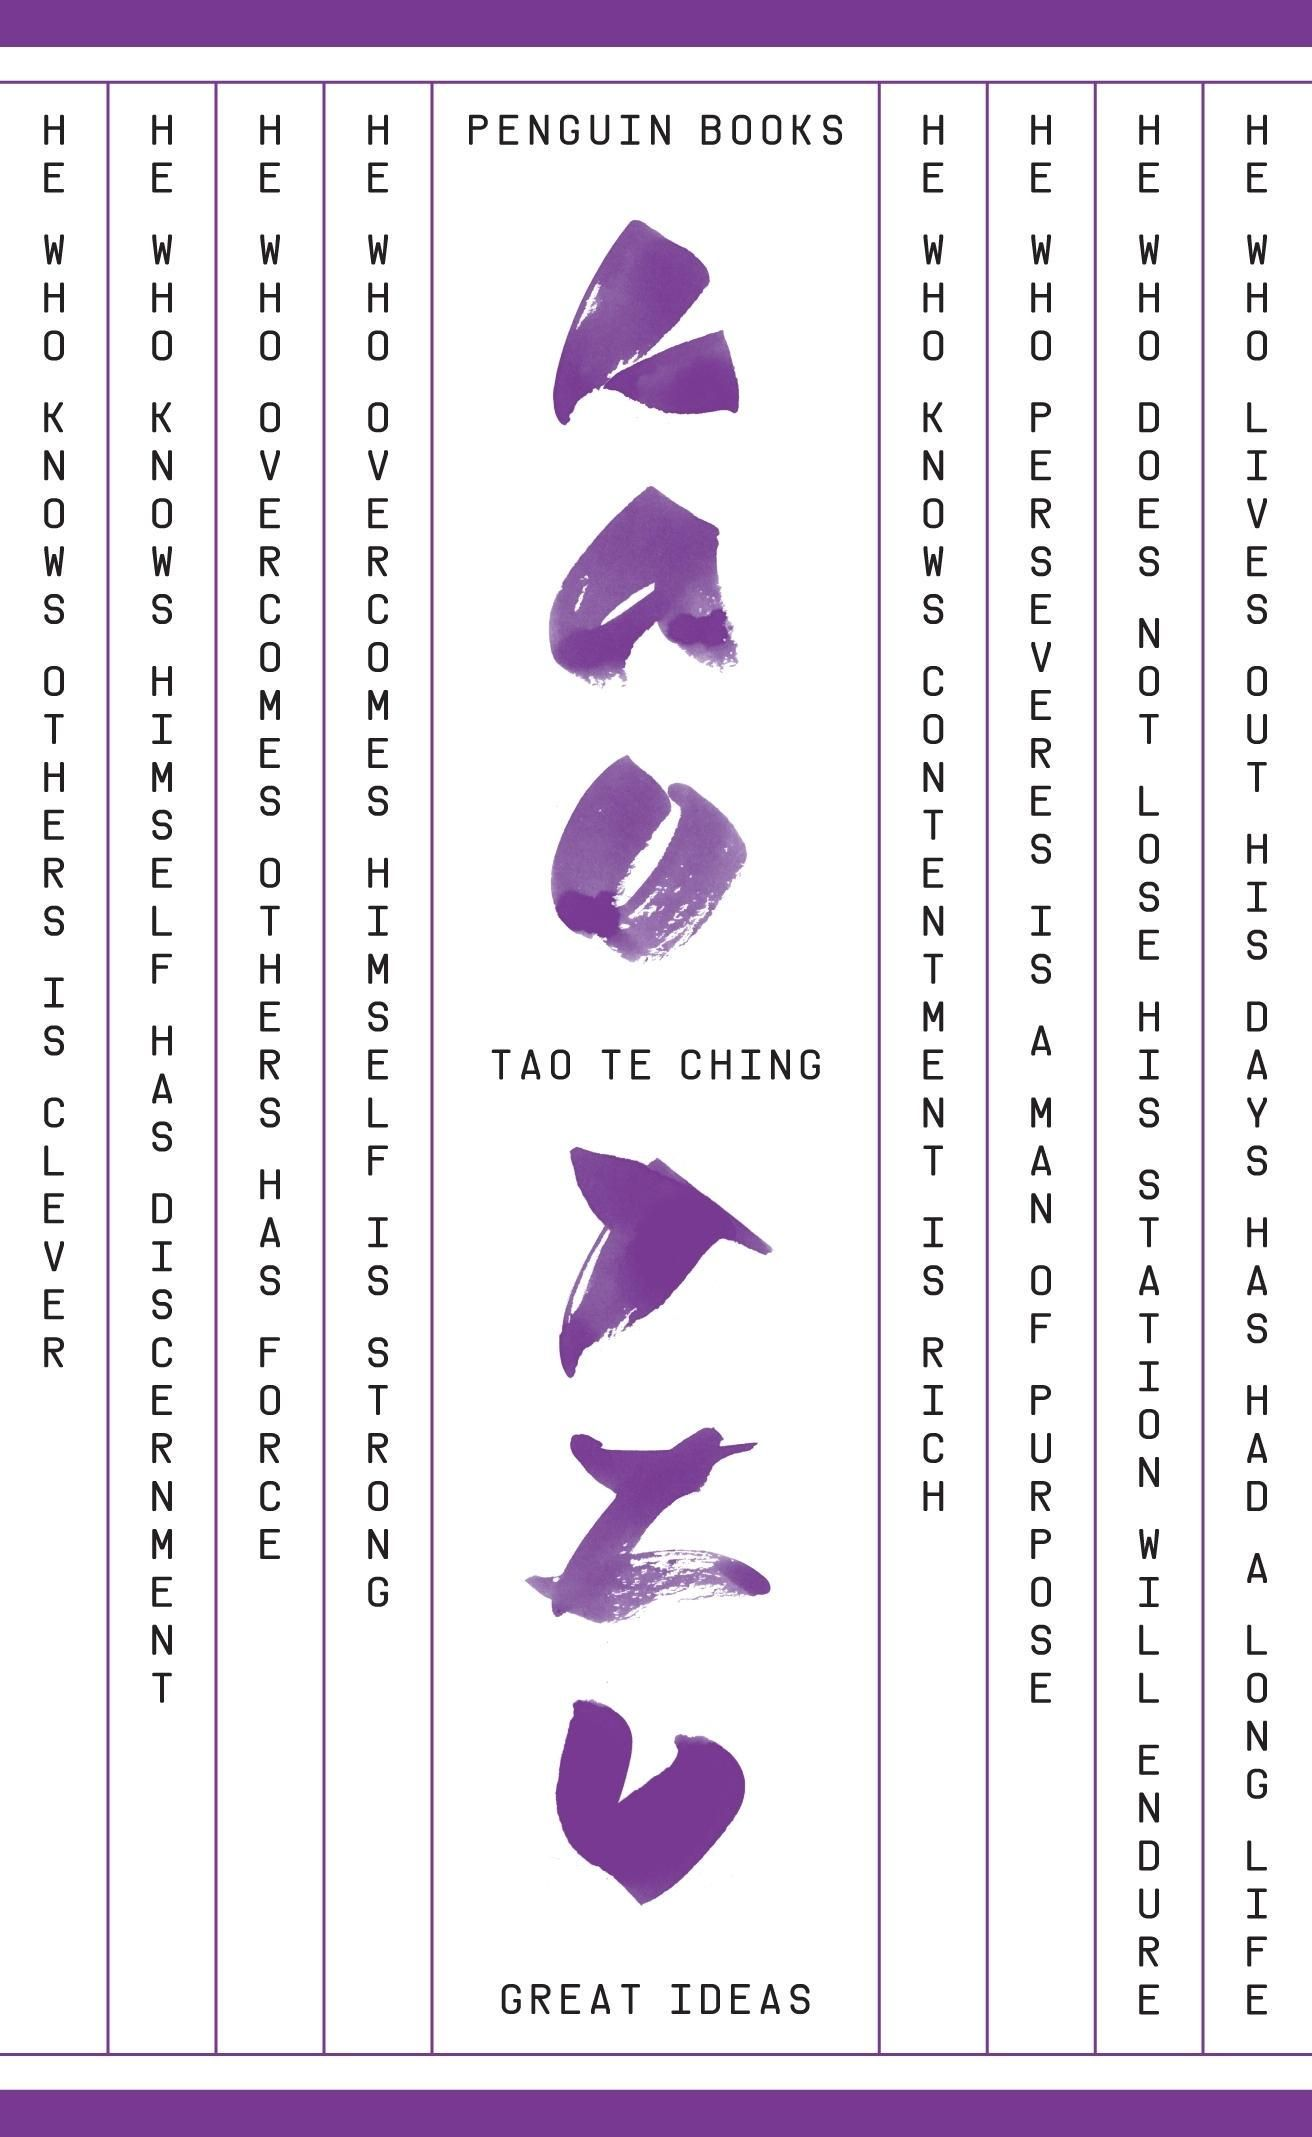 tao te ching by lao tzu book cover art typography and design by tao te ching by lao tzu book cover art typography and design by david pearson for the penguin great ideas series check out the full gallery at